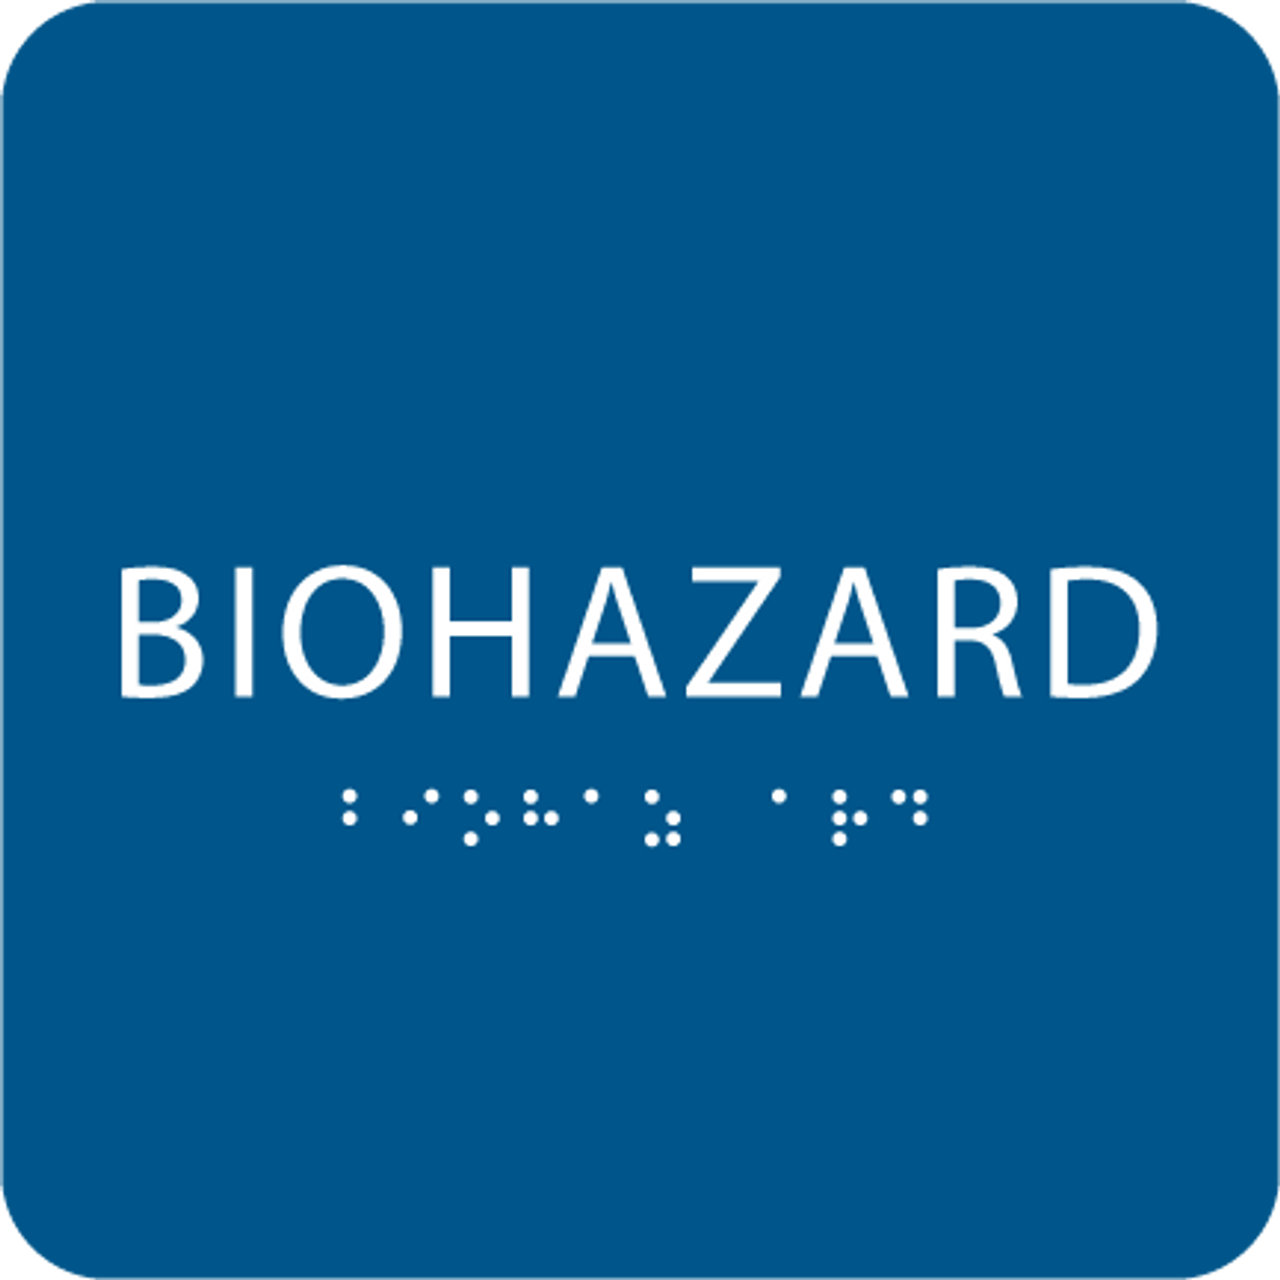 Blue Biohazard ADA Sign